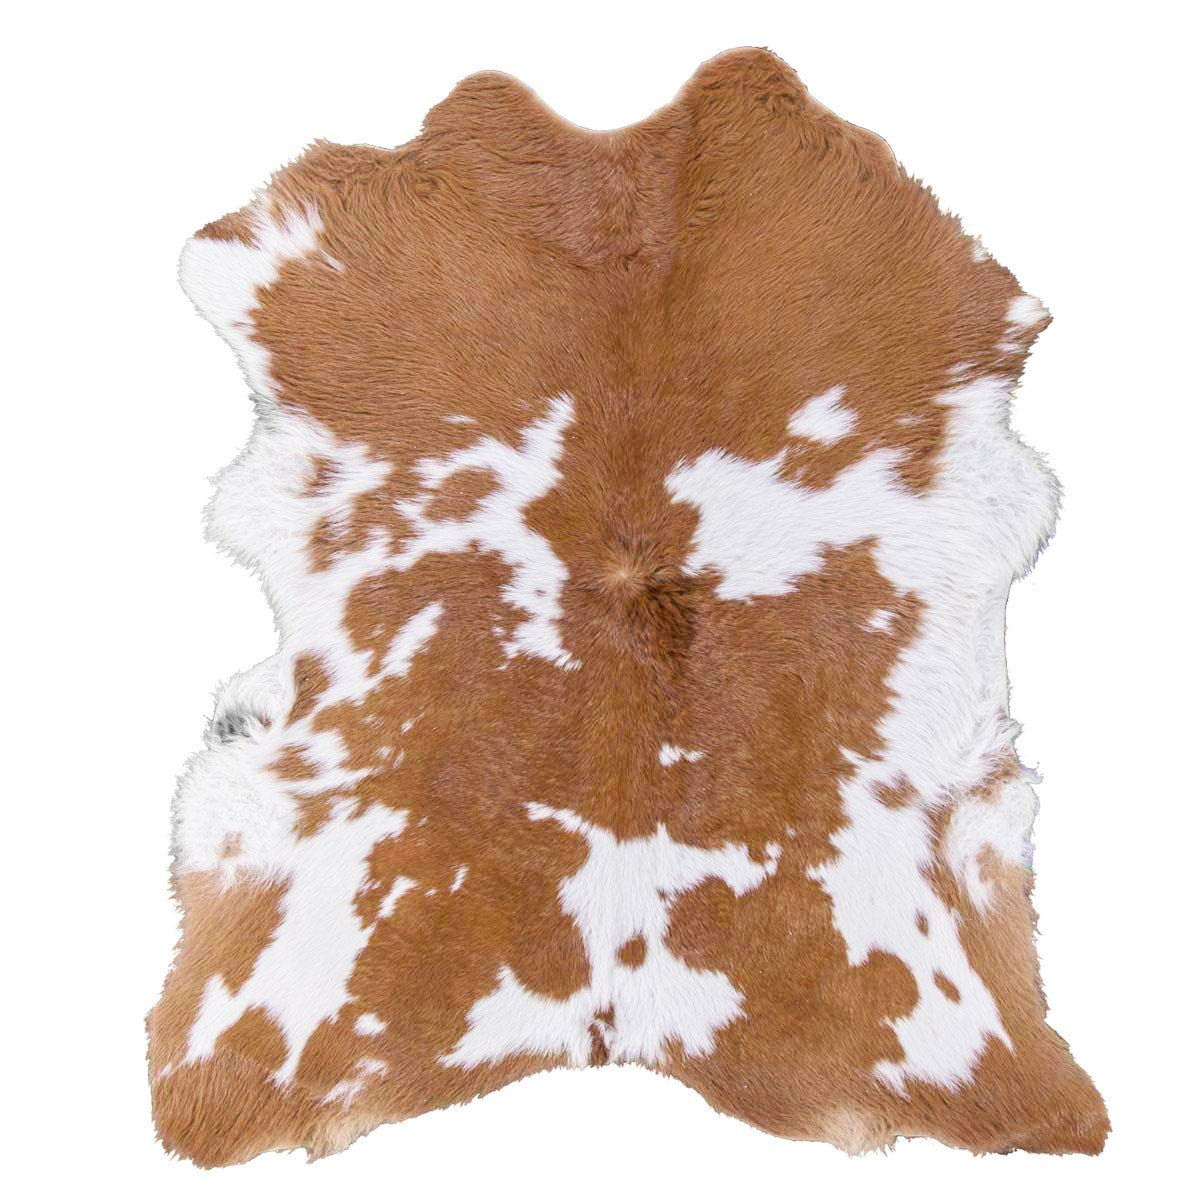 Cream Caramel Hairy Cowhide Calf Skin Rug by RODEO